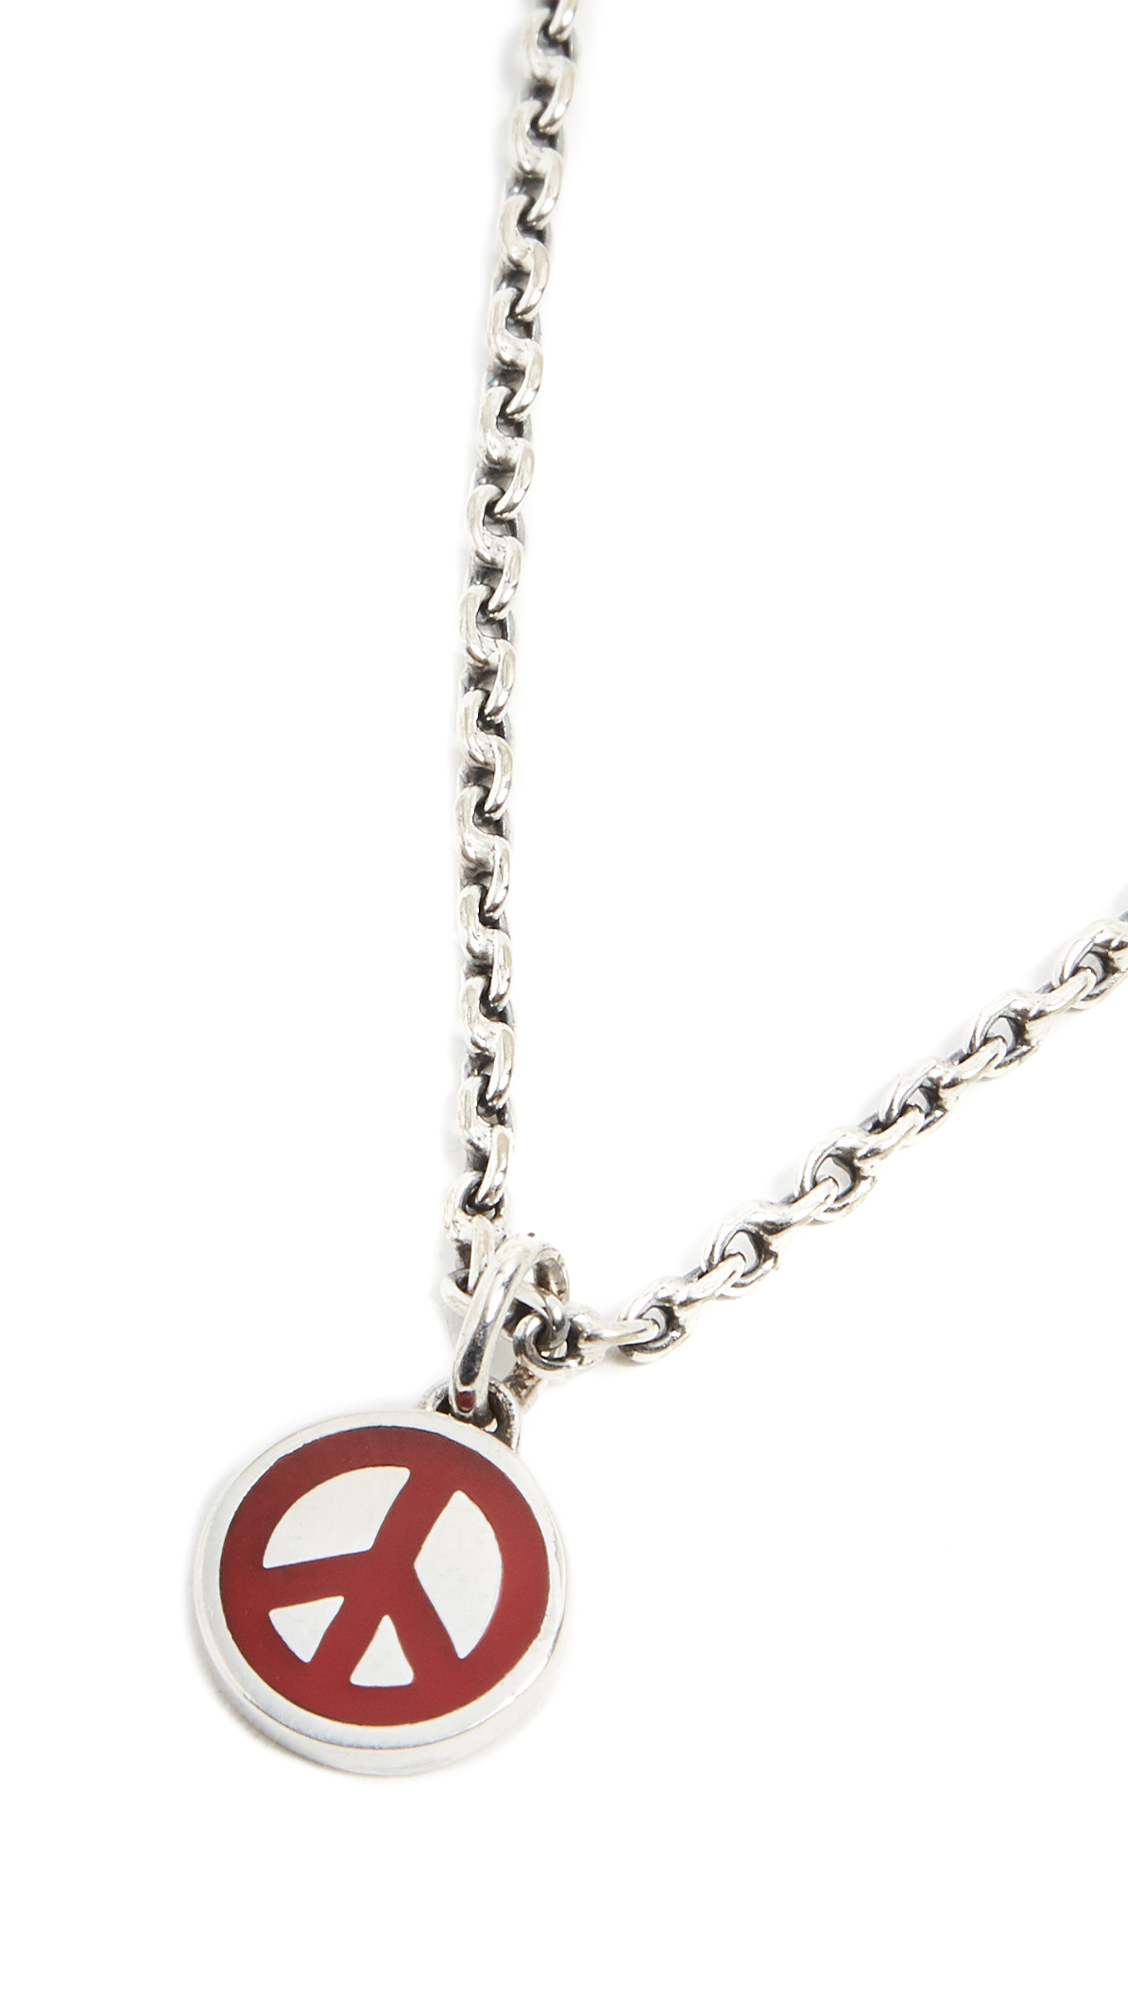 Caputo & Co. Peace Necklace - Red KPCp16Xqz